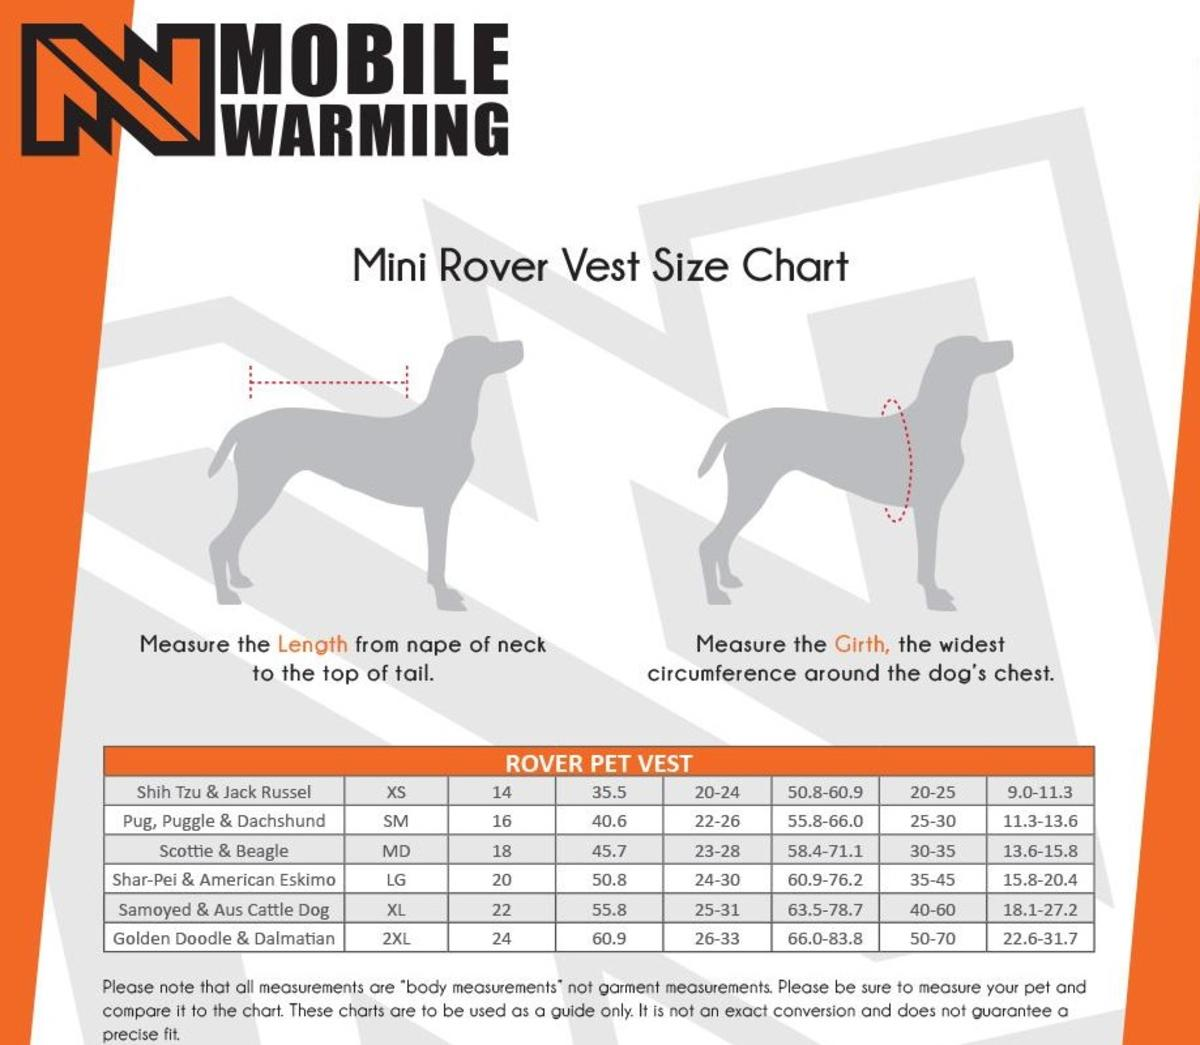 Mobile Warming 7.4V Rover Heated Dog